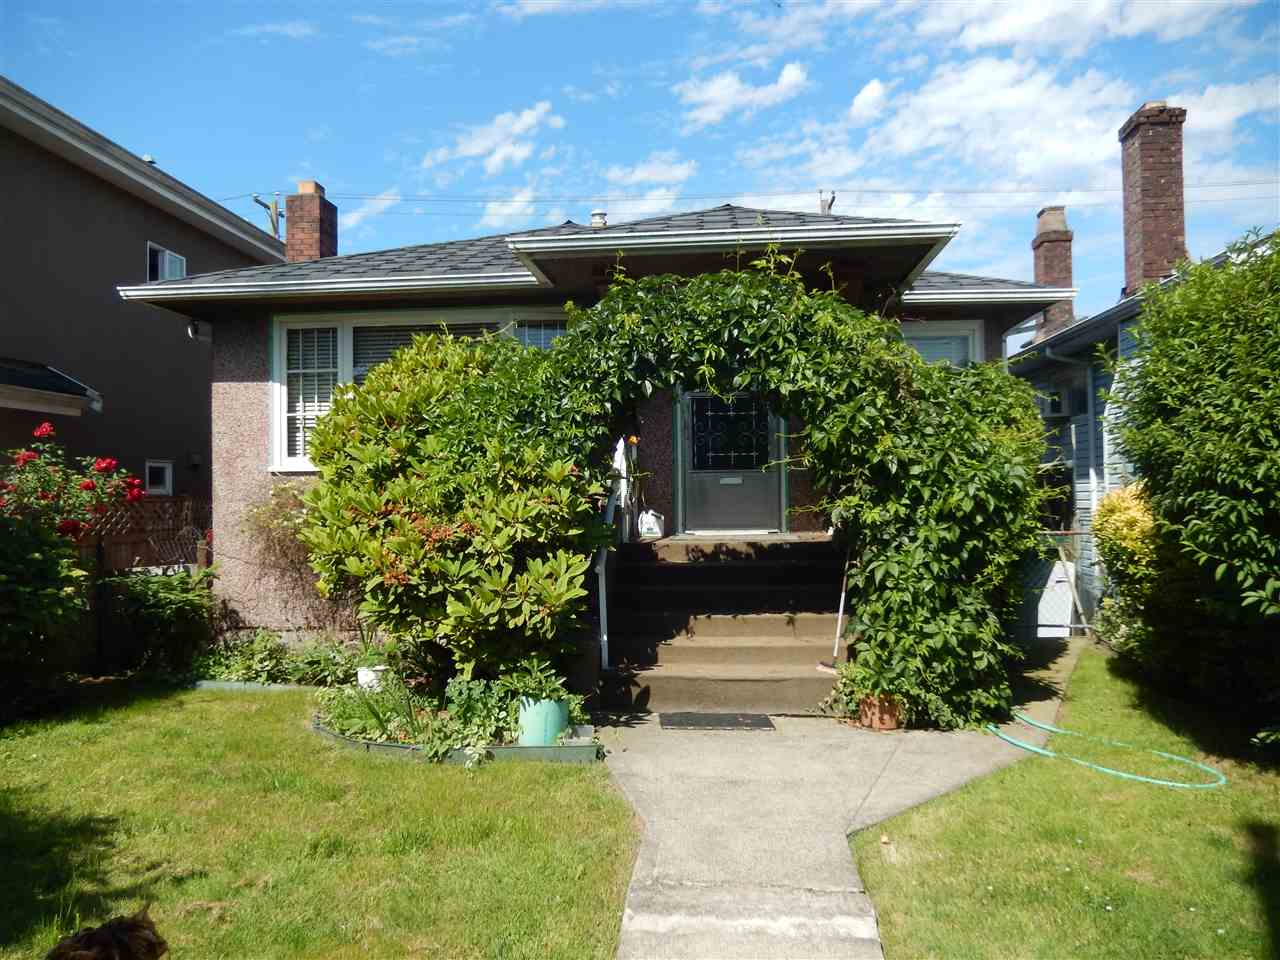 LIVE IN. INVEST. HOLD. Excellent opportunity in prime Main Street location. Solid 2 bedroom with 1 bedroom suite. RT2 Zoning. Walking distance to Langara College, on UBC bus route. All amenities steps away. Ideal investment on all levels. Quick possession possible.